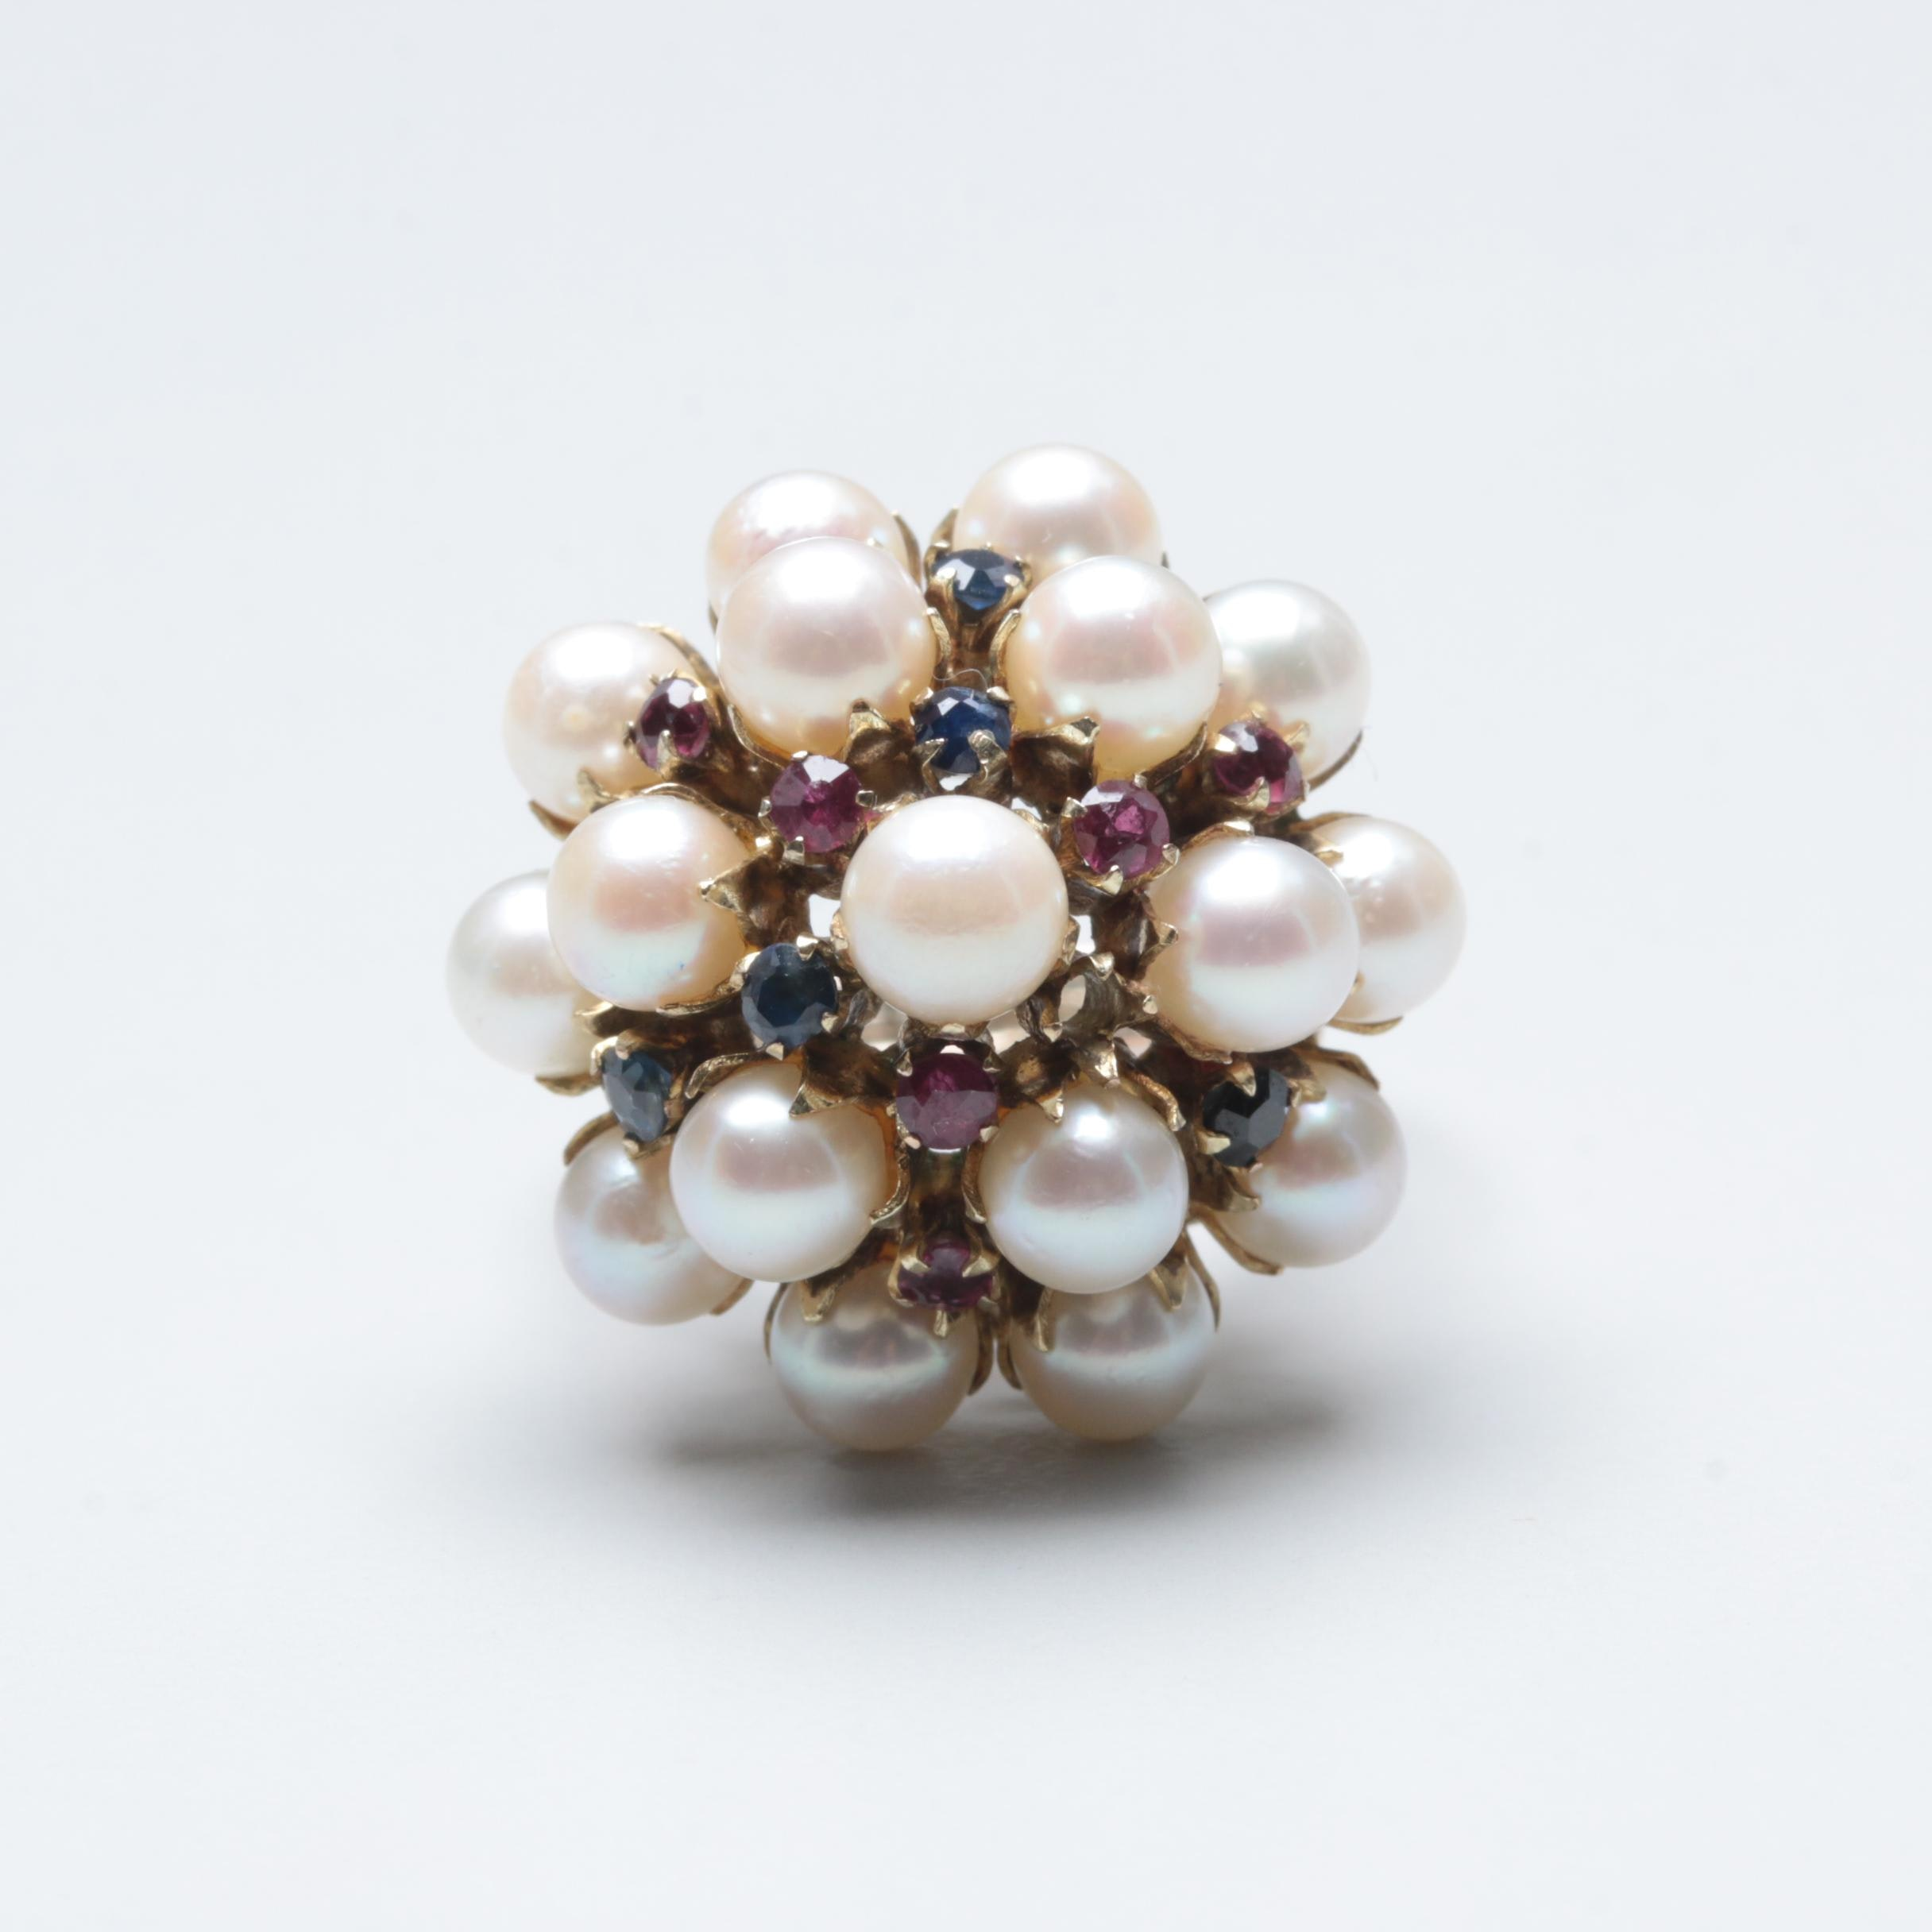 10K and 14K Yellow Gold Cultured Pearl, Sapphire, and Ruby Domed Ring